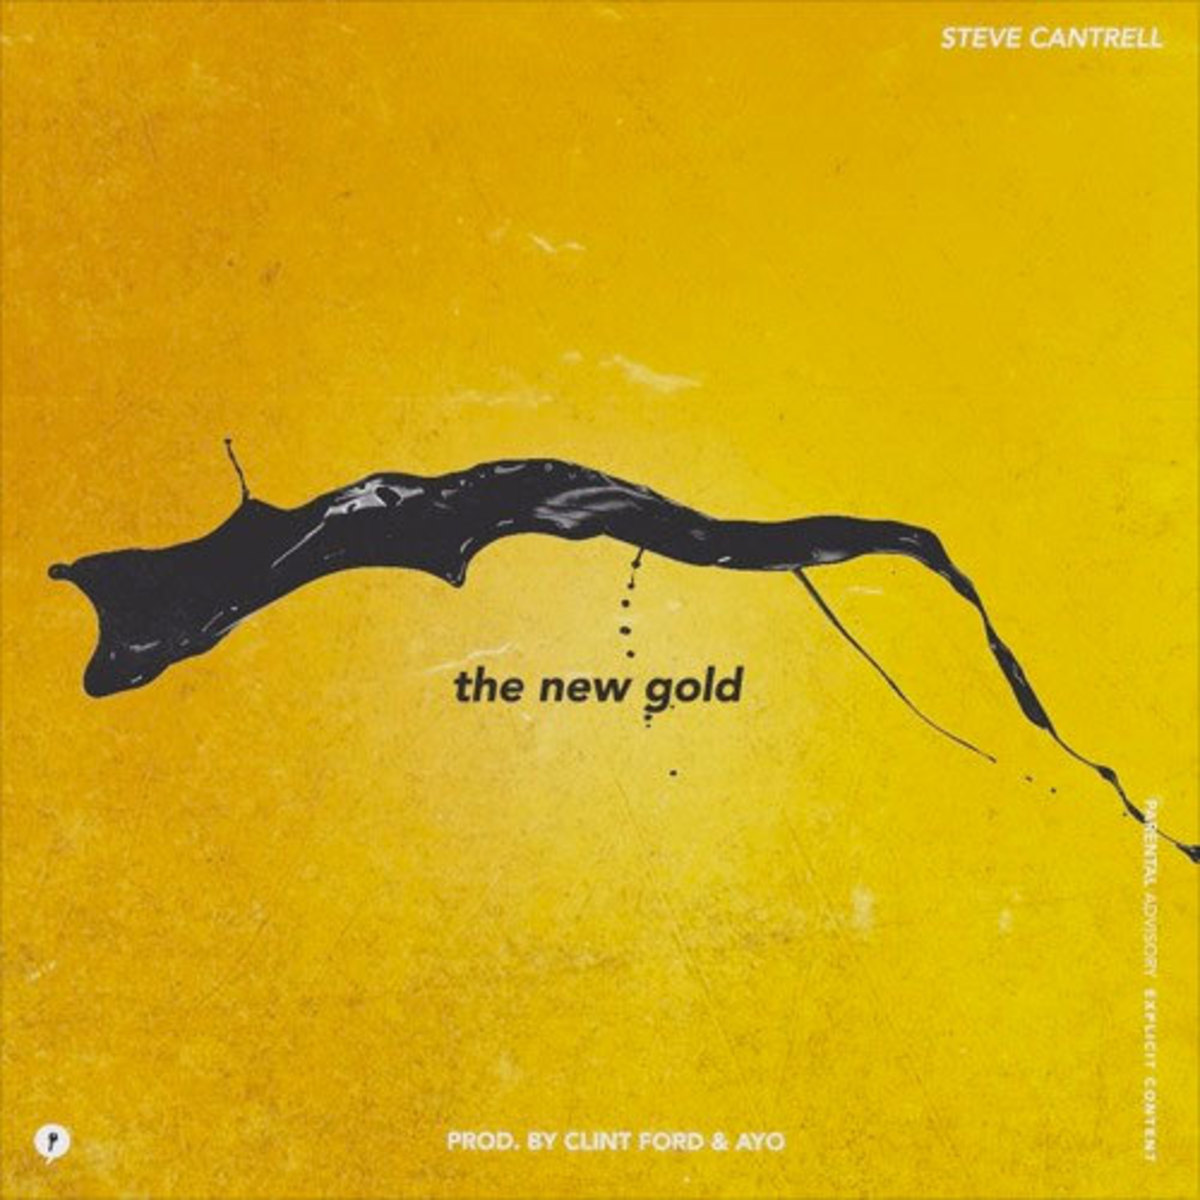 steve-cantrell-the-new-gold.jpg